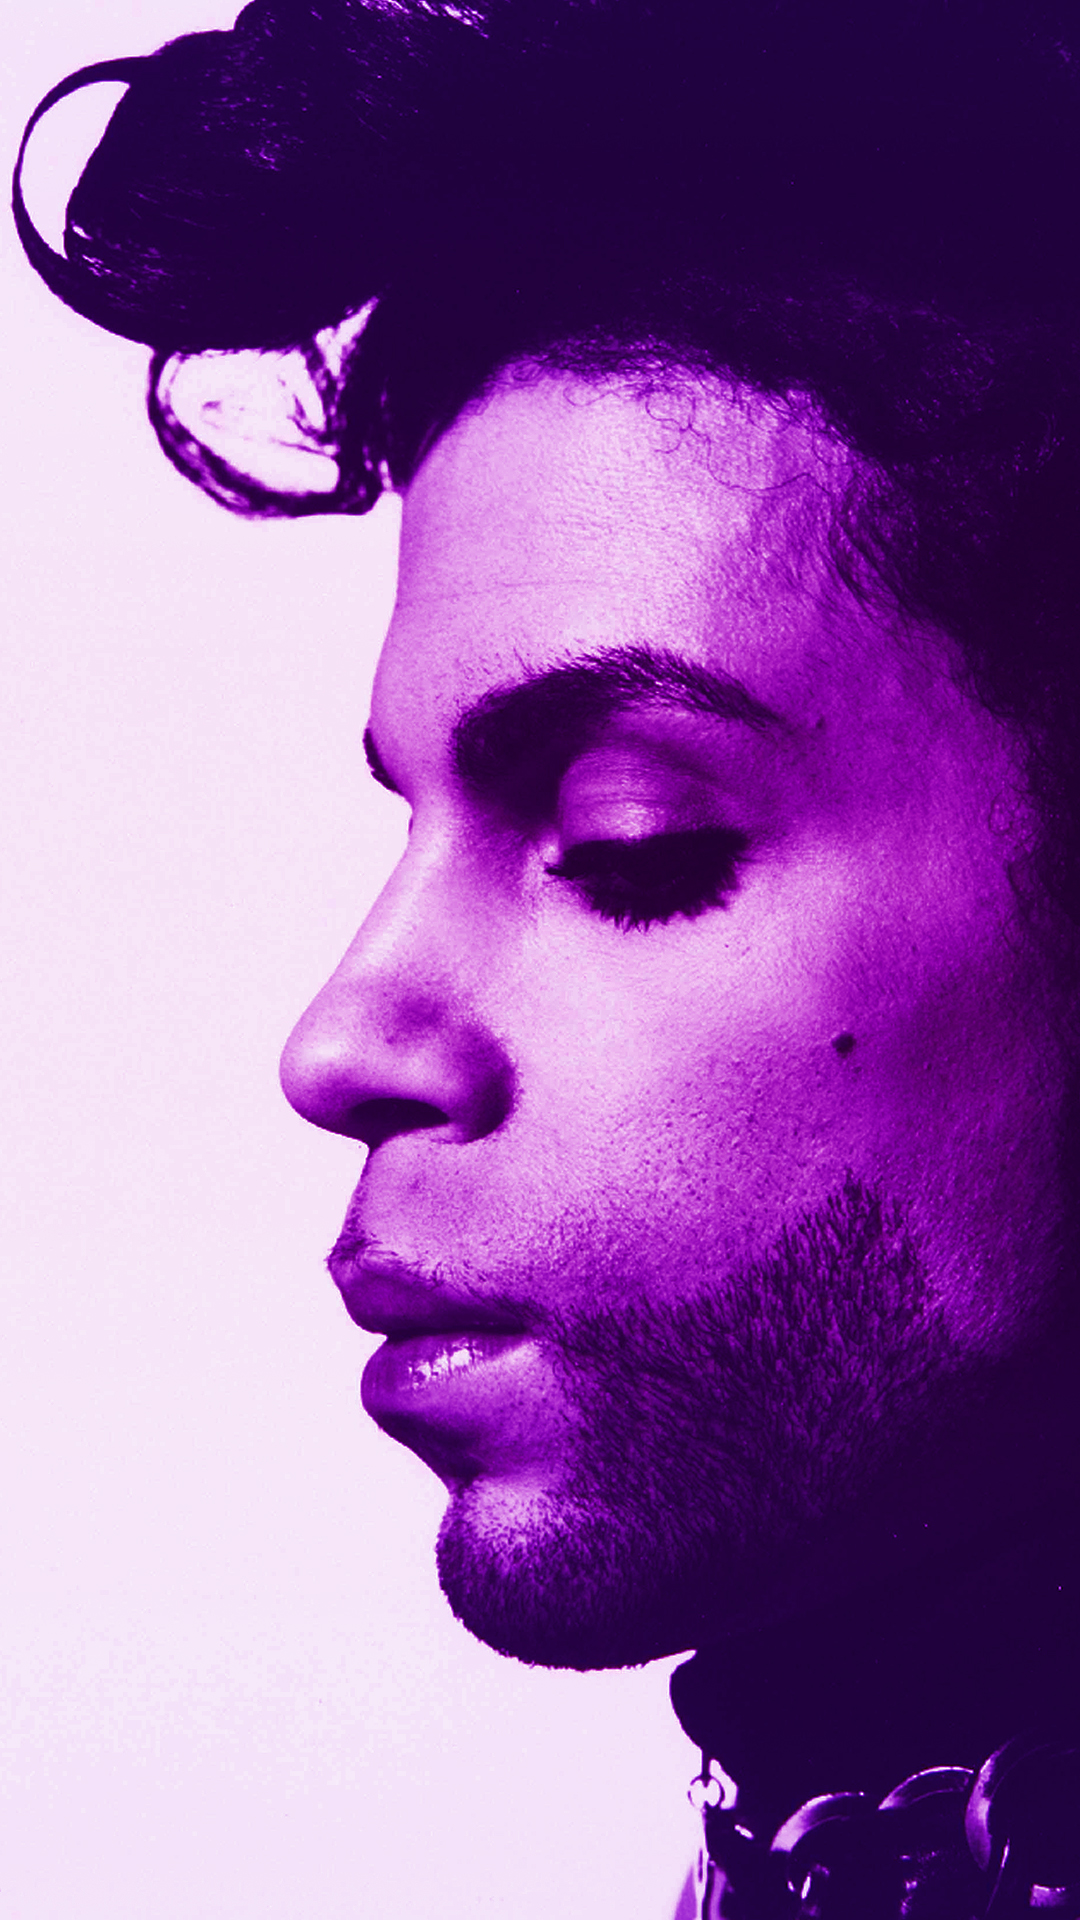 Prince hd wallpaper for your mobile phone - Prince wallpaper ...